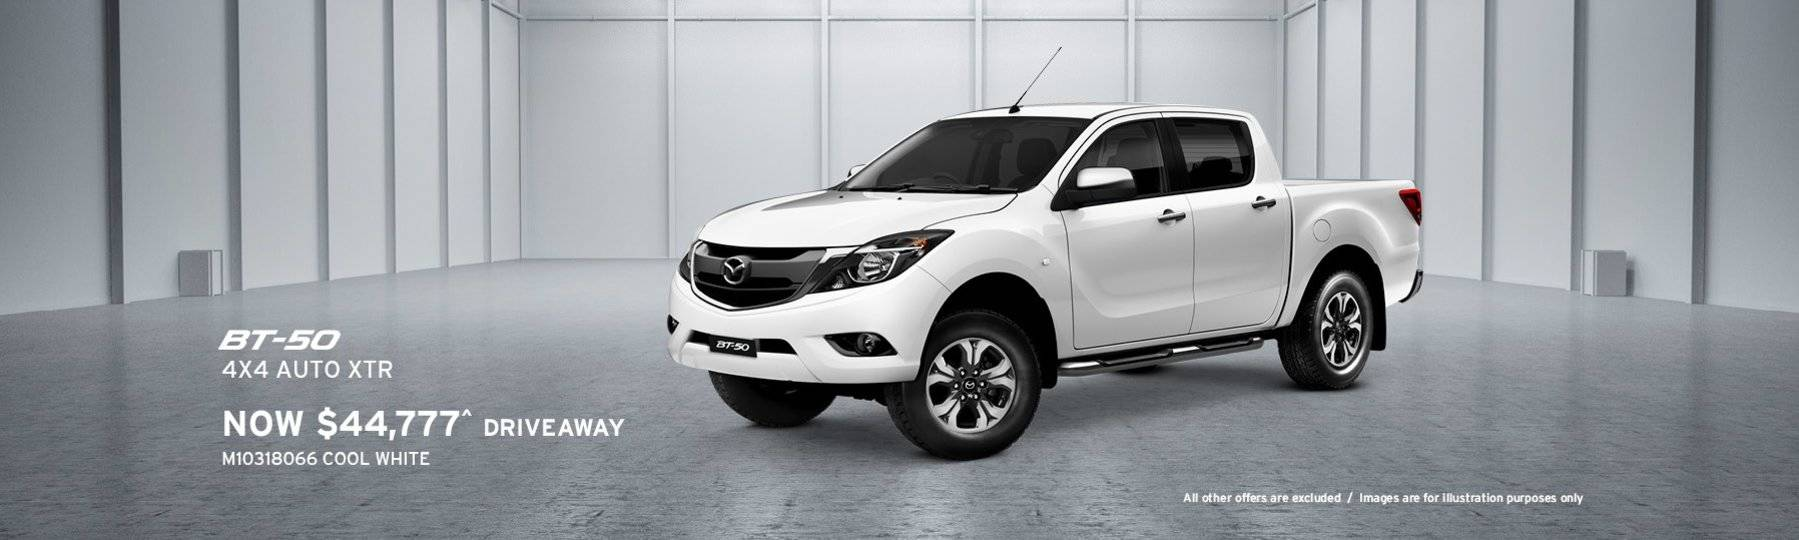 Newcastle Mazda, BT50